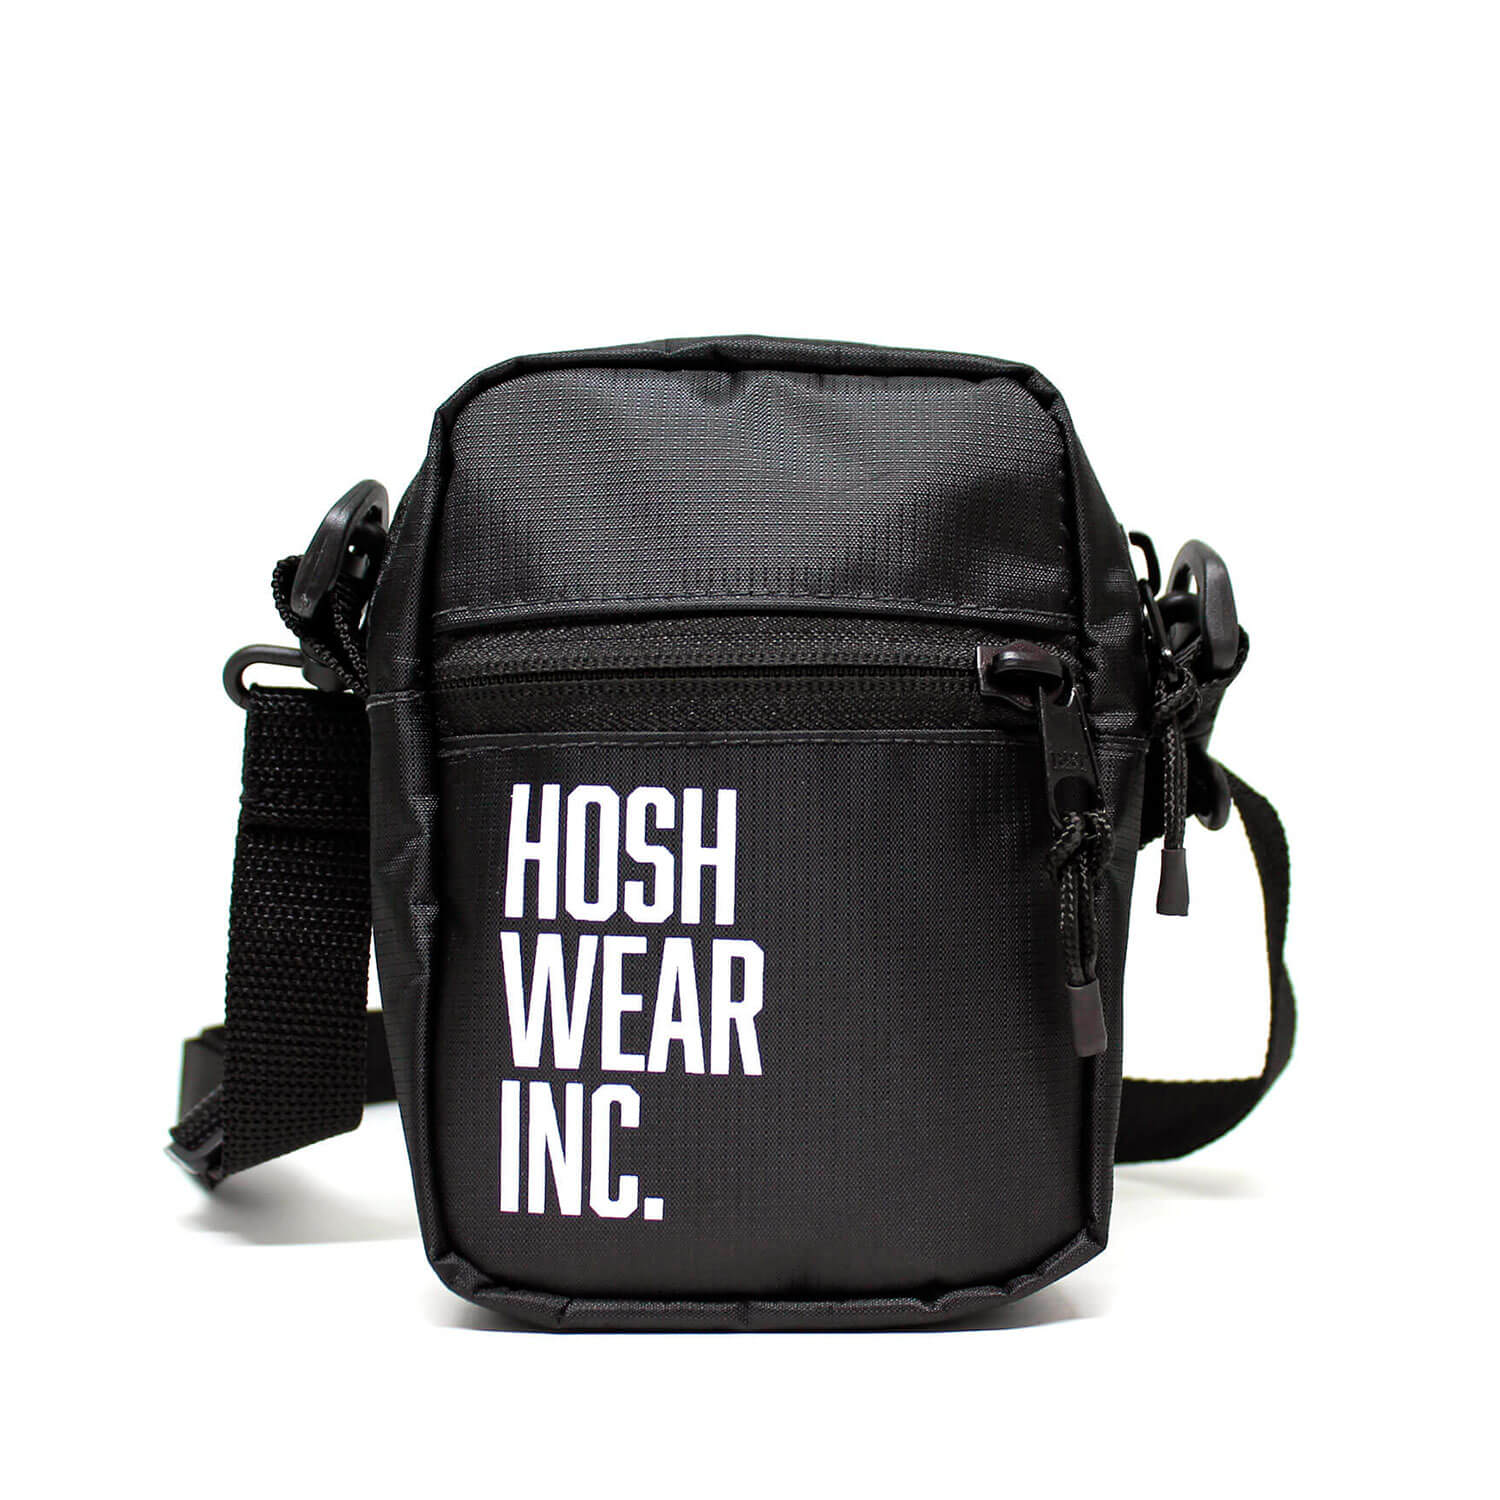 Mini Shoulder Bag Hoshwear All Black